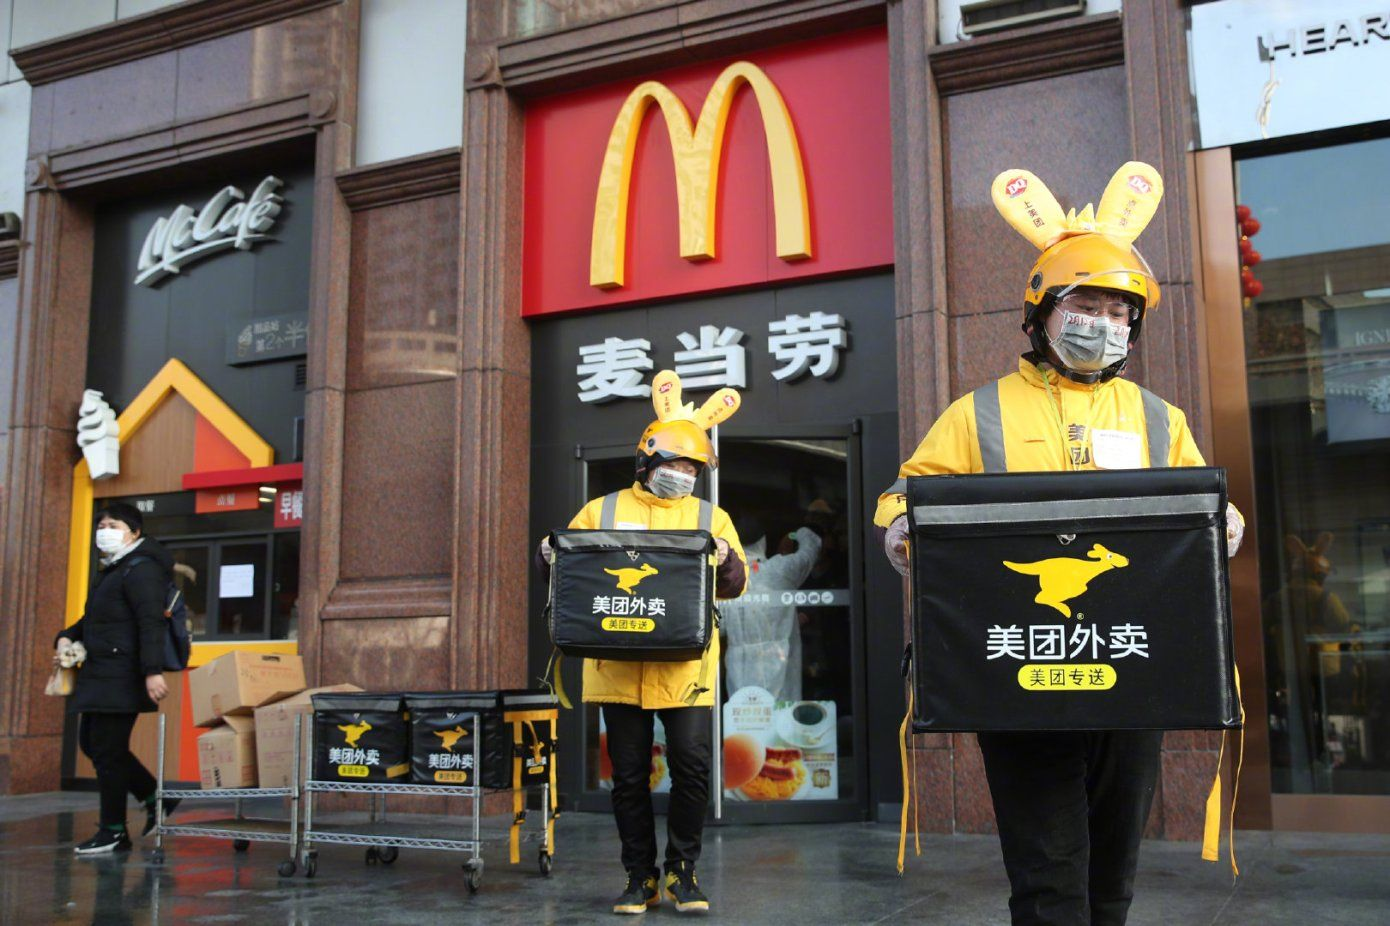 China Food Delivery Giant Meituan gets $100B valuation in pandemic